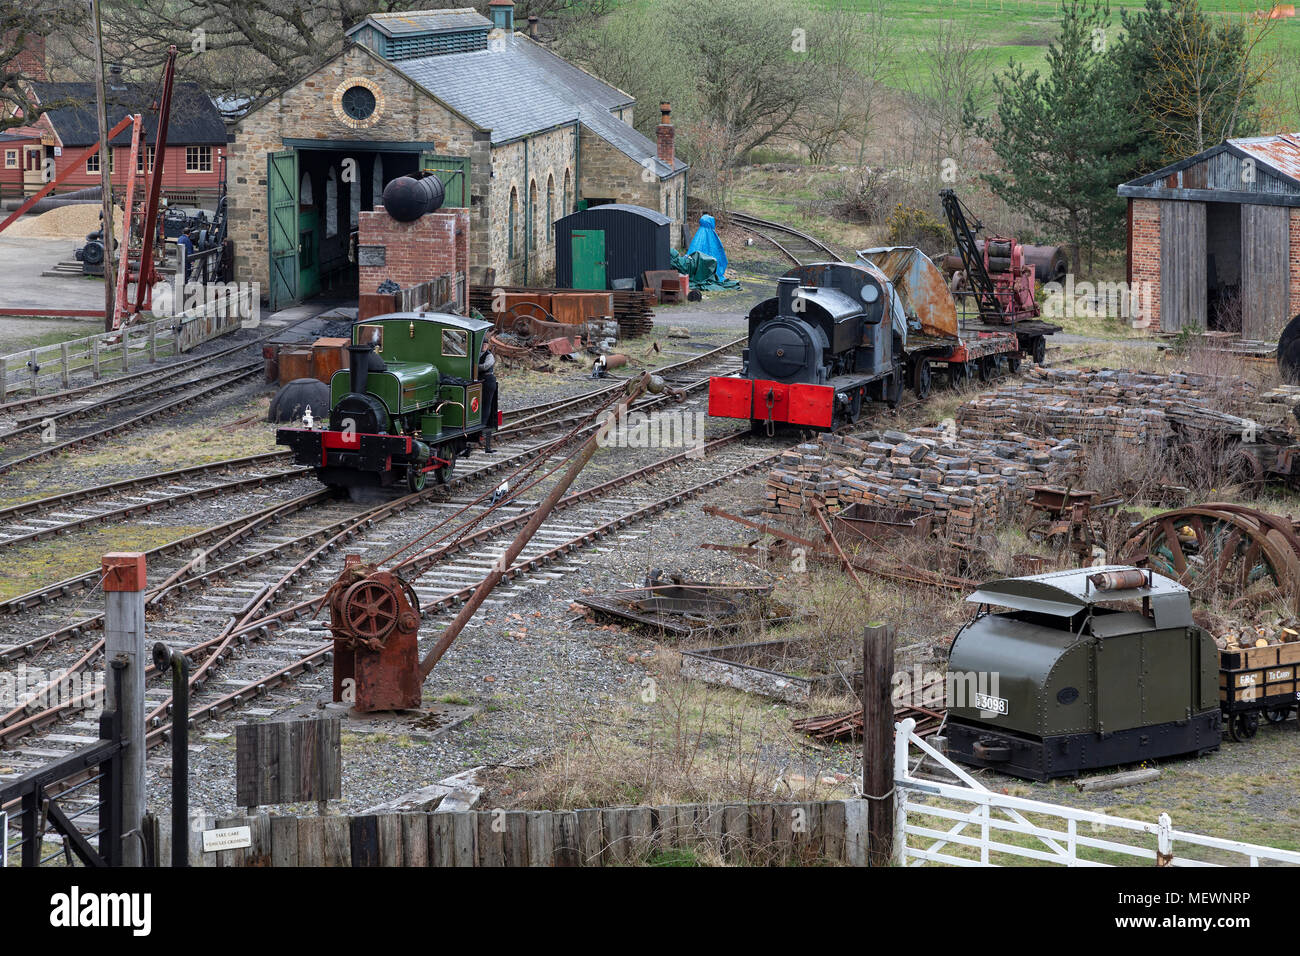 Goods shunting yard - Beamish Museum in the northeast of England - Stock Image